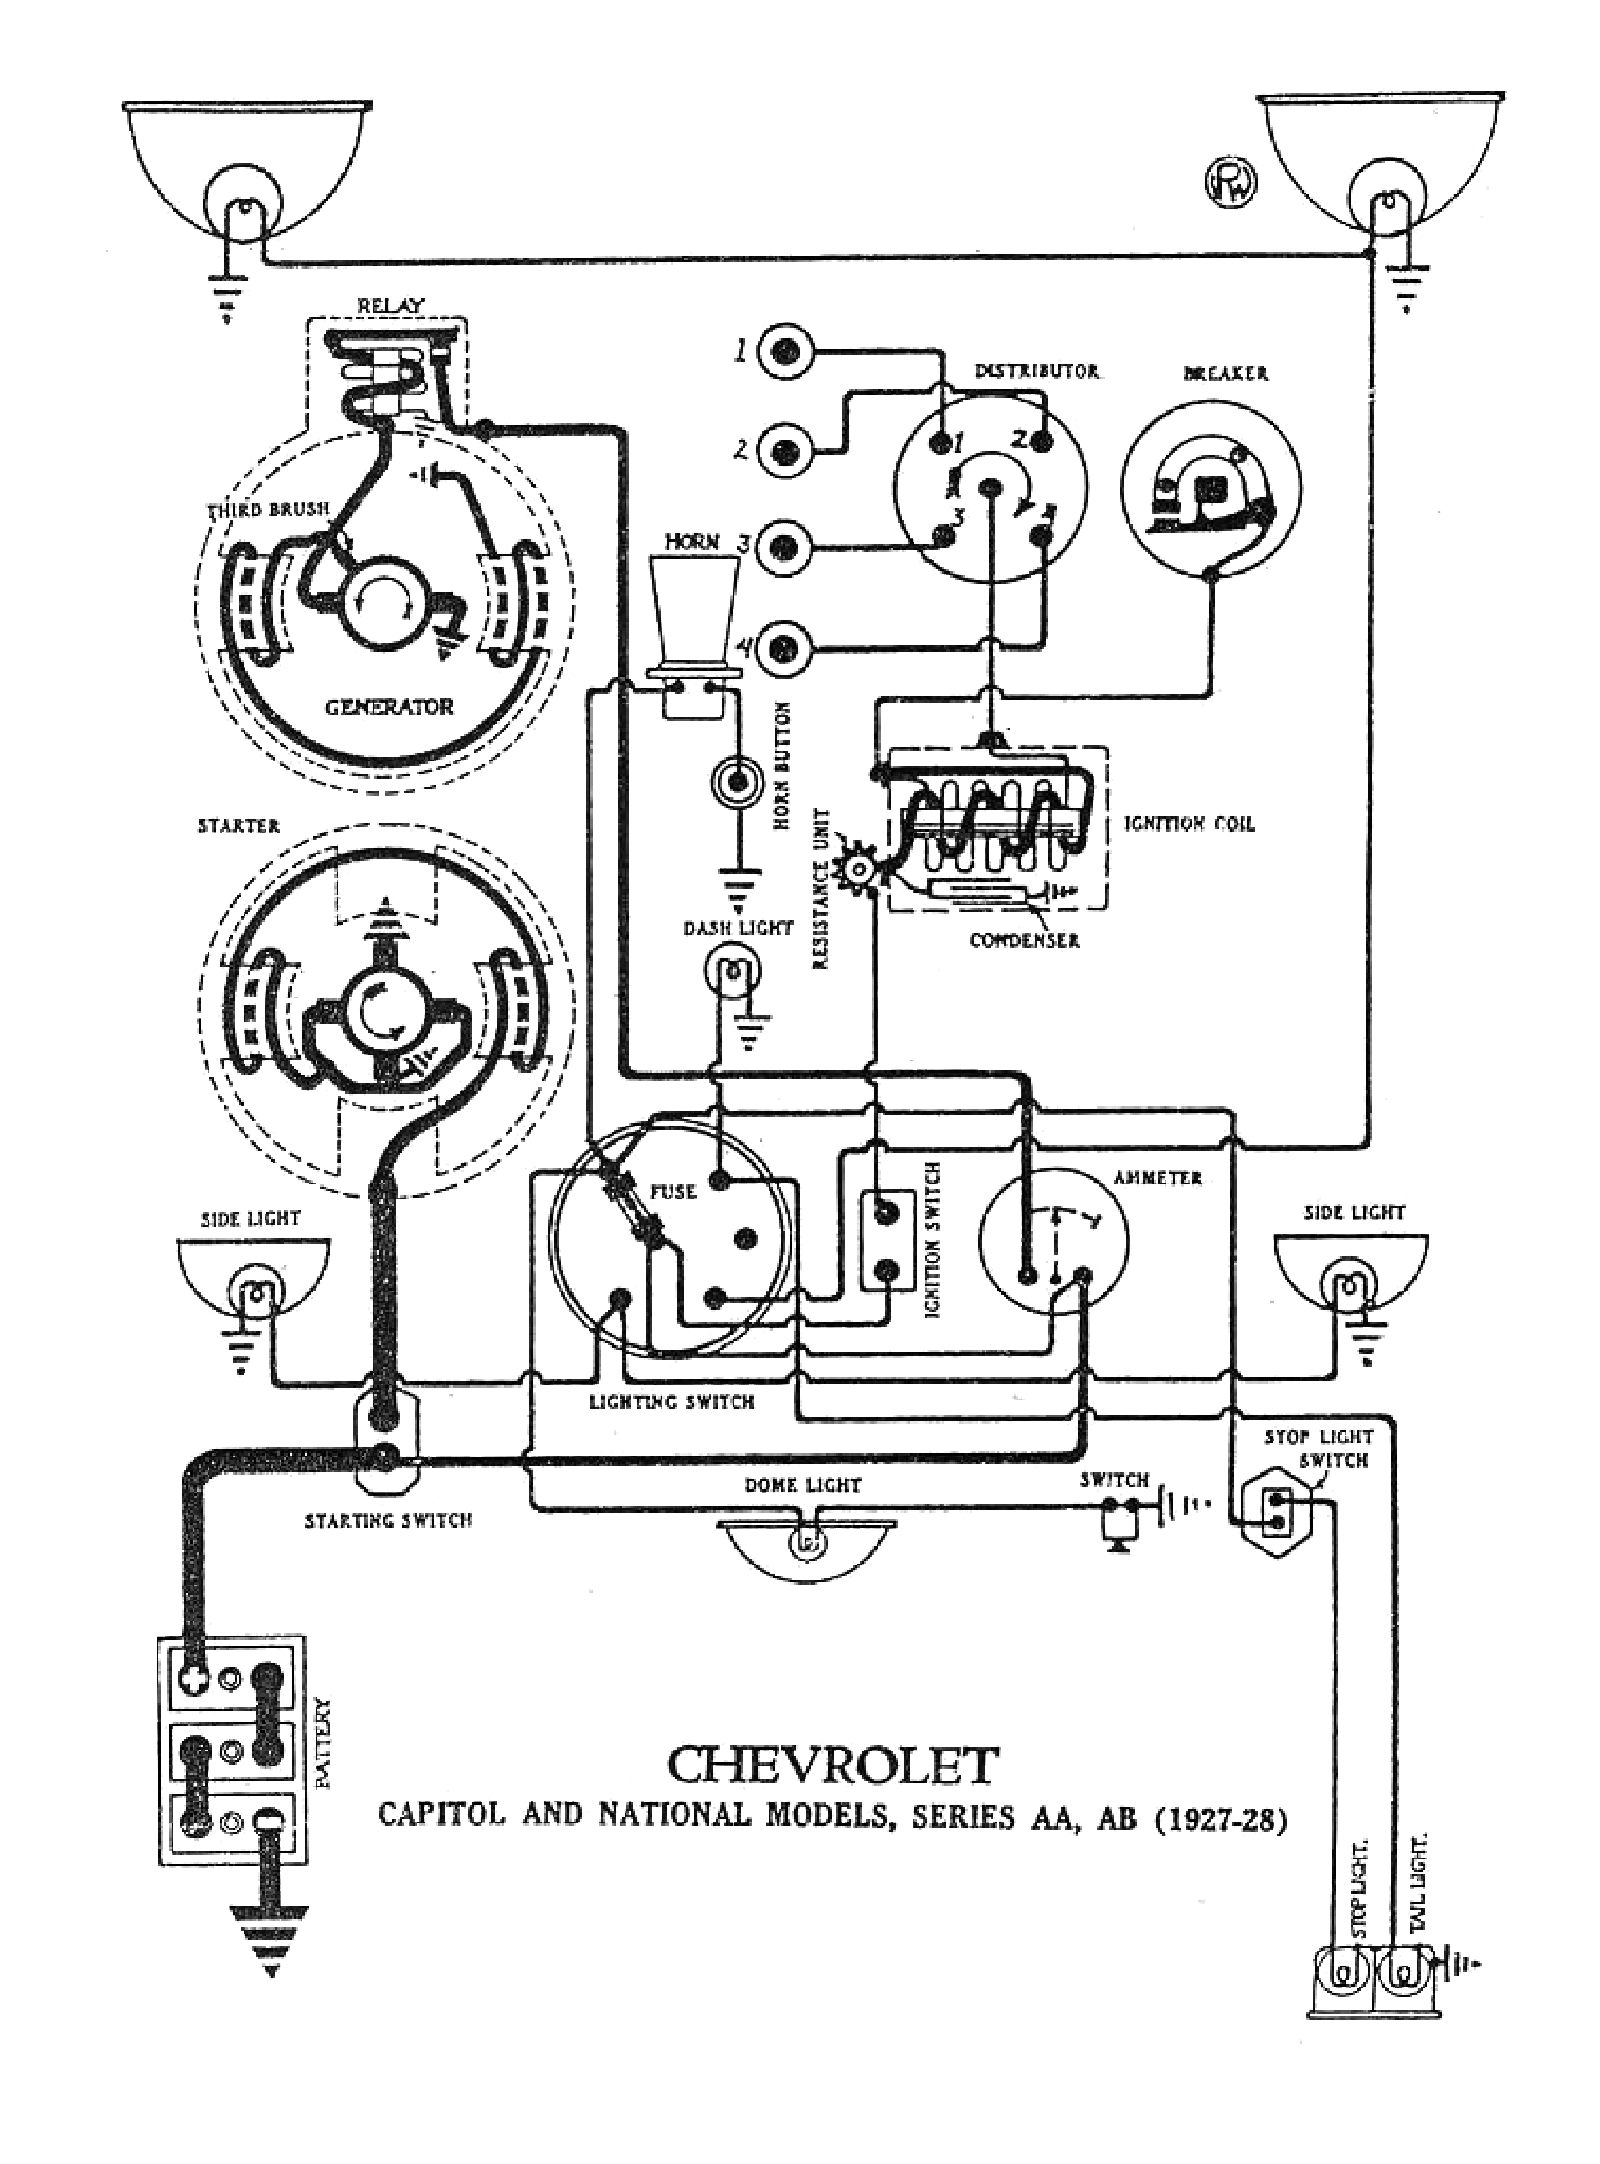 hight resolution of 1950 ford ignition coil wiring detailed schematics diagram rh mrskindsclass com 1700 ford tractor wiring diagram